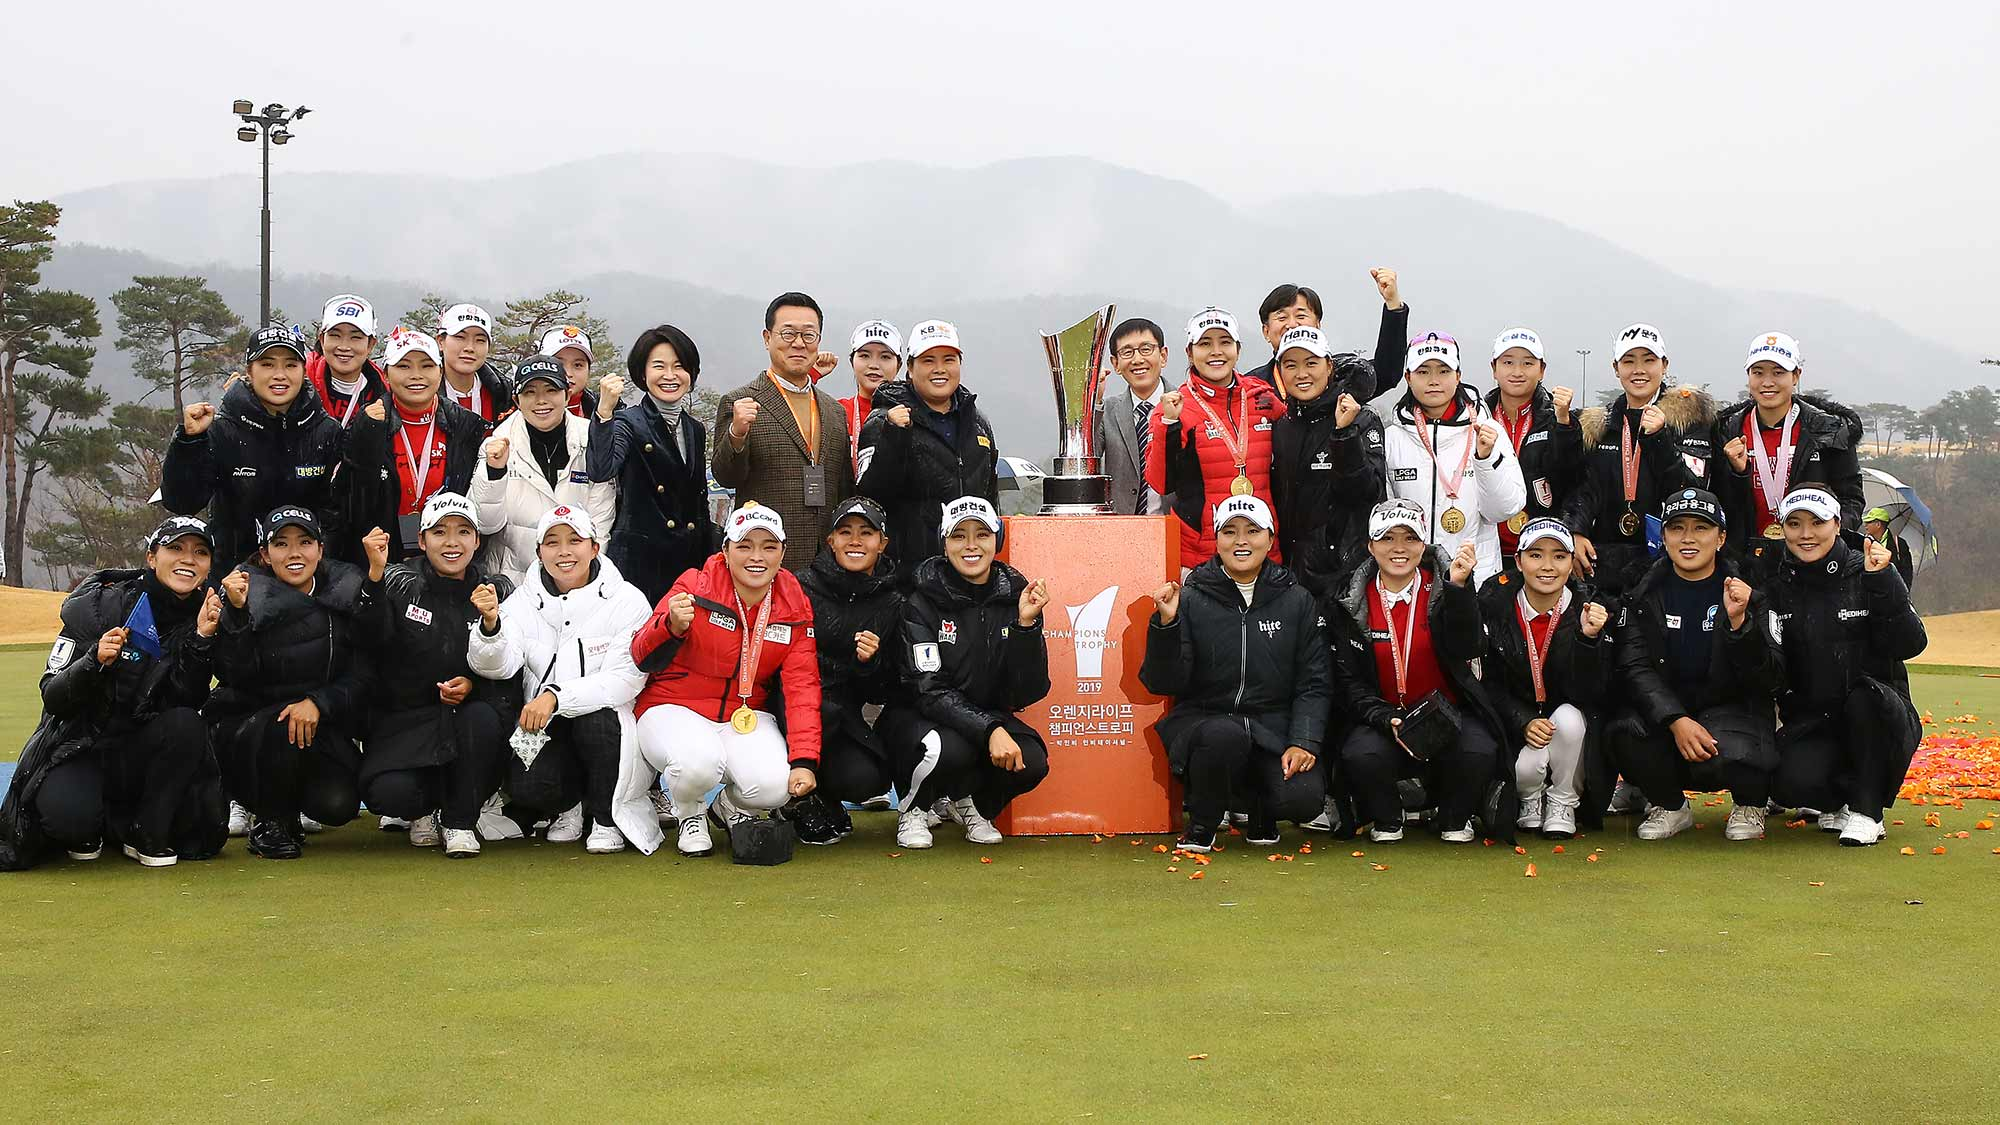 Teams from the LPGA and KLPGA pose after the KLPGA won the 2019 Orange Life Champions Trophy Inbee Park Invitational at Blue One The Honors Country Club in Gyeongju, Republic of Korea